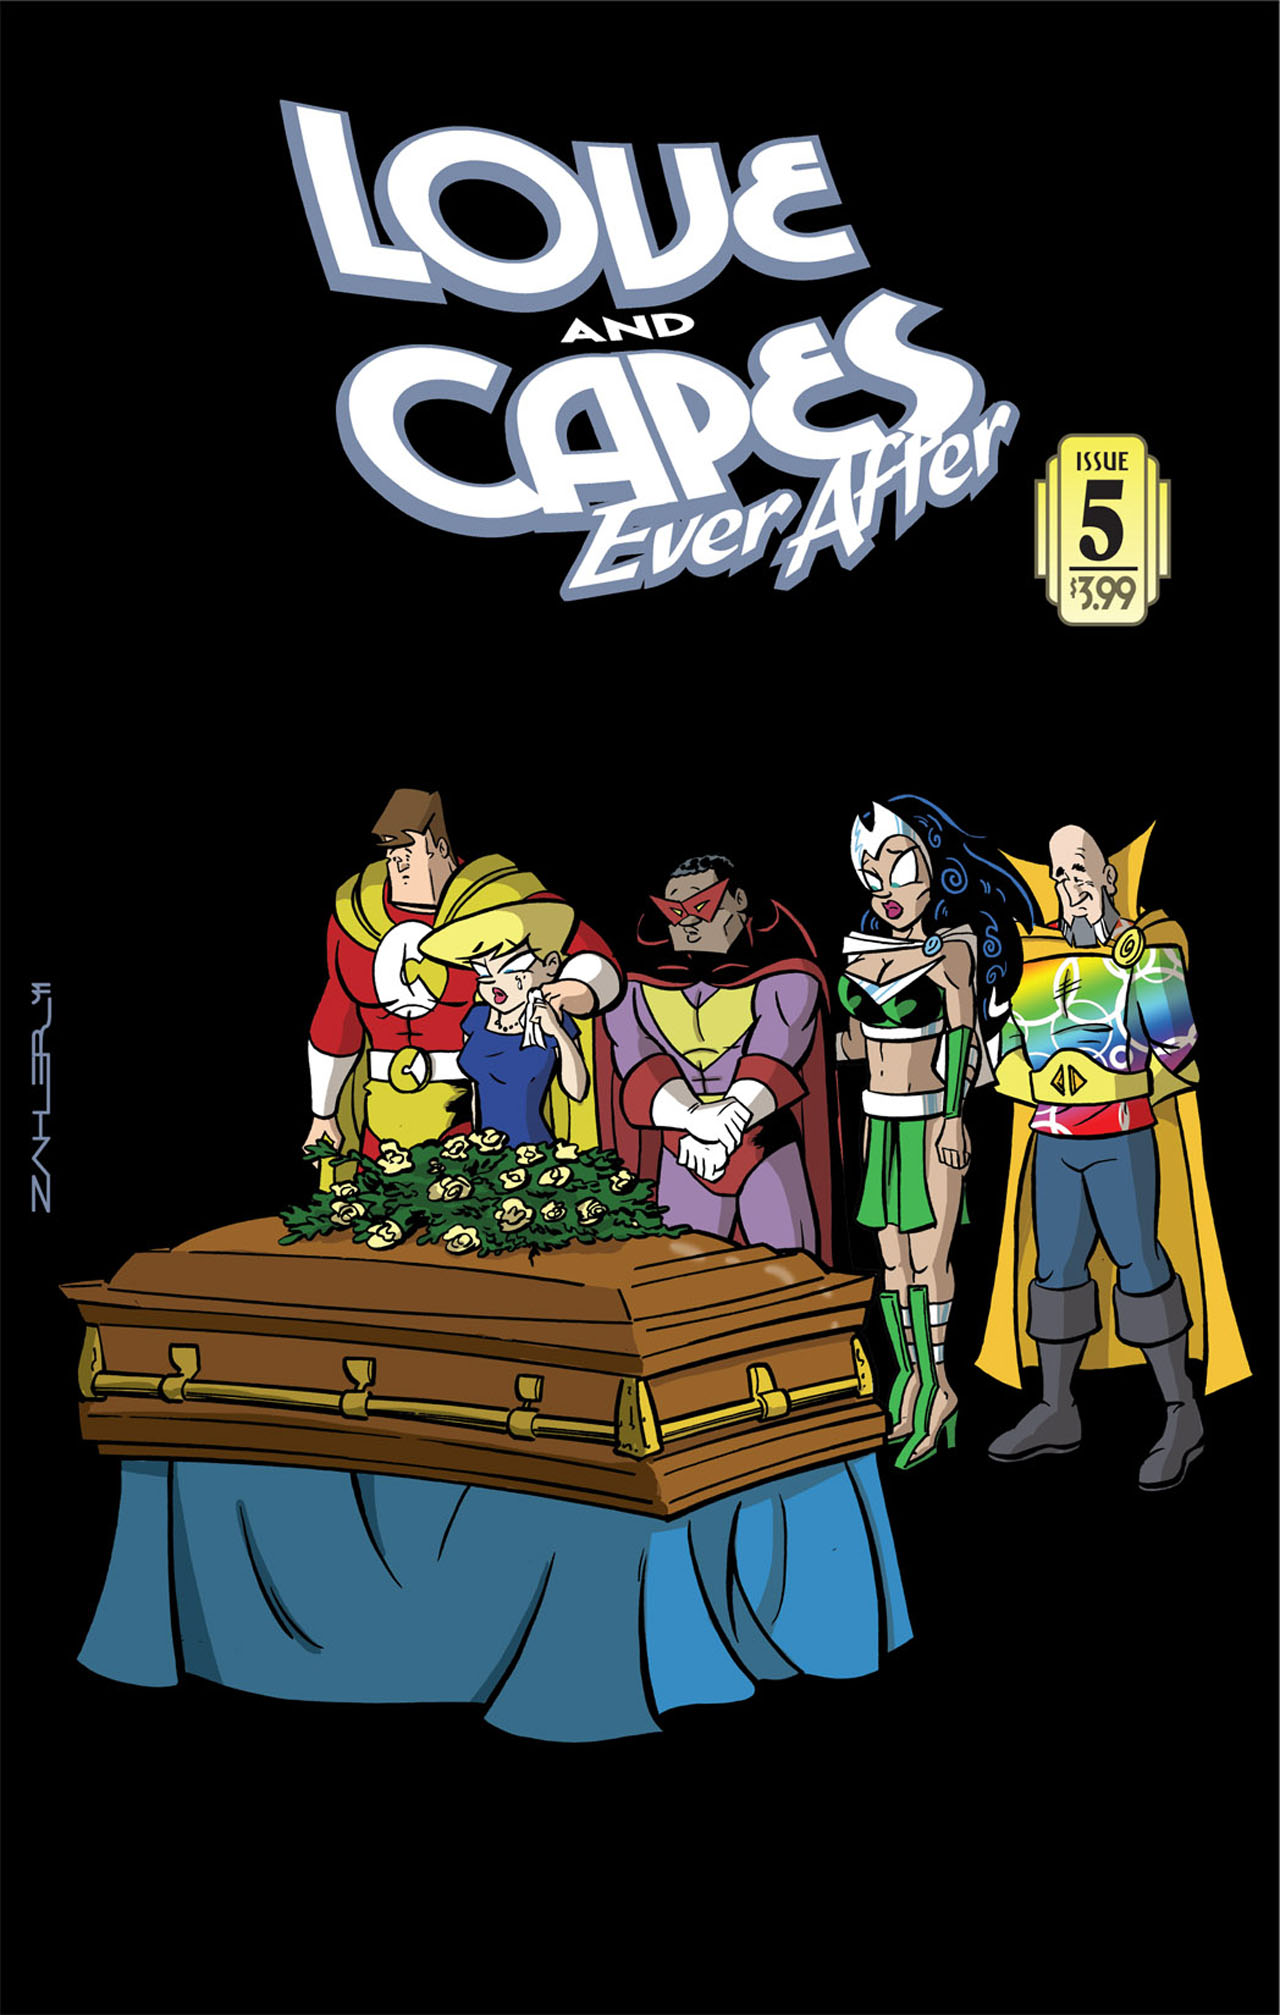 Love and Capes: Ever After (2011) #5 by Thom Zahler.